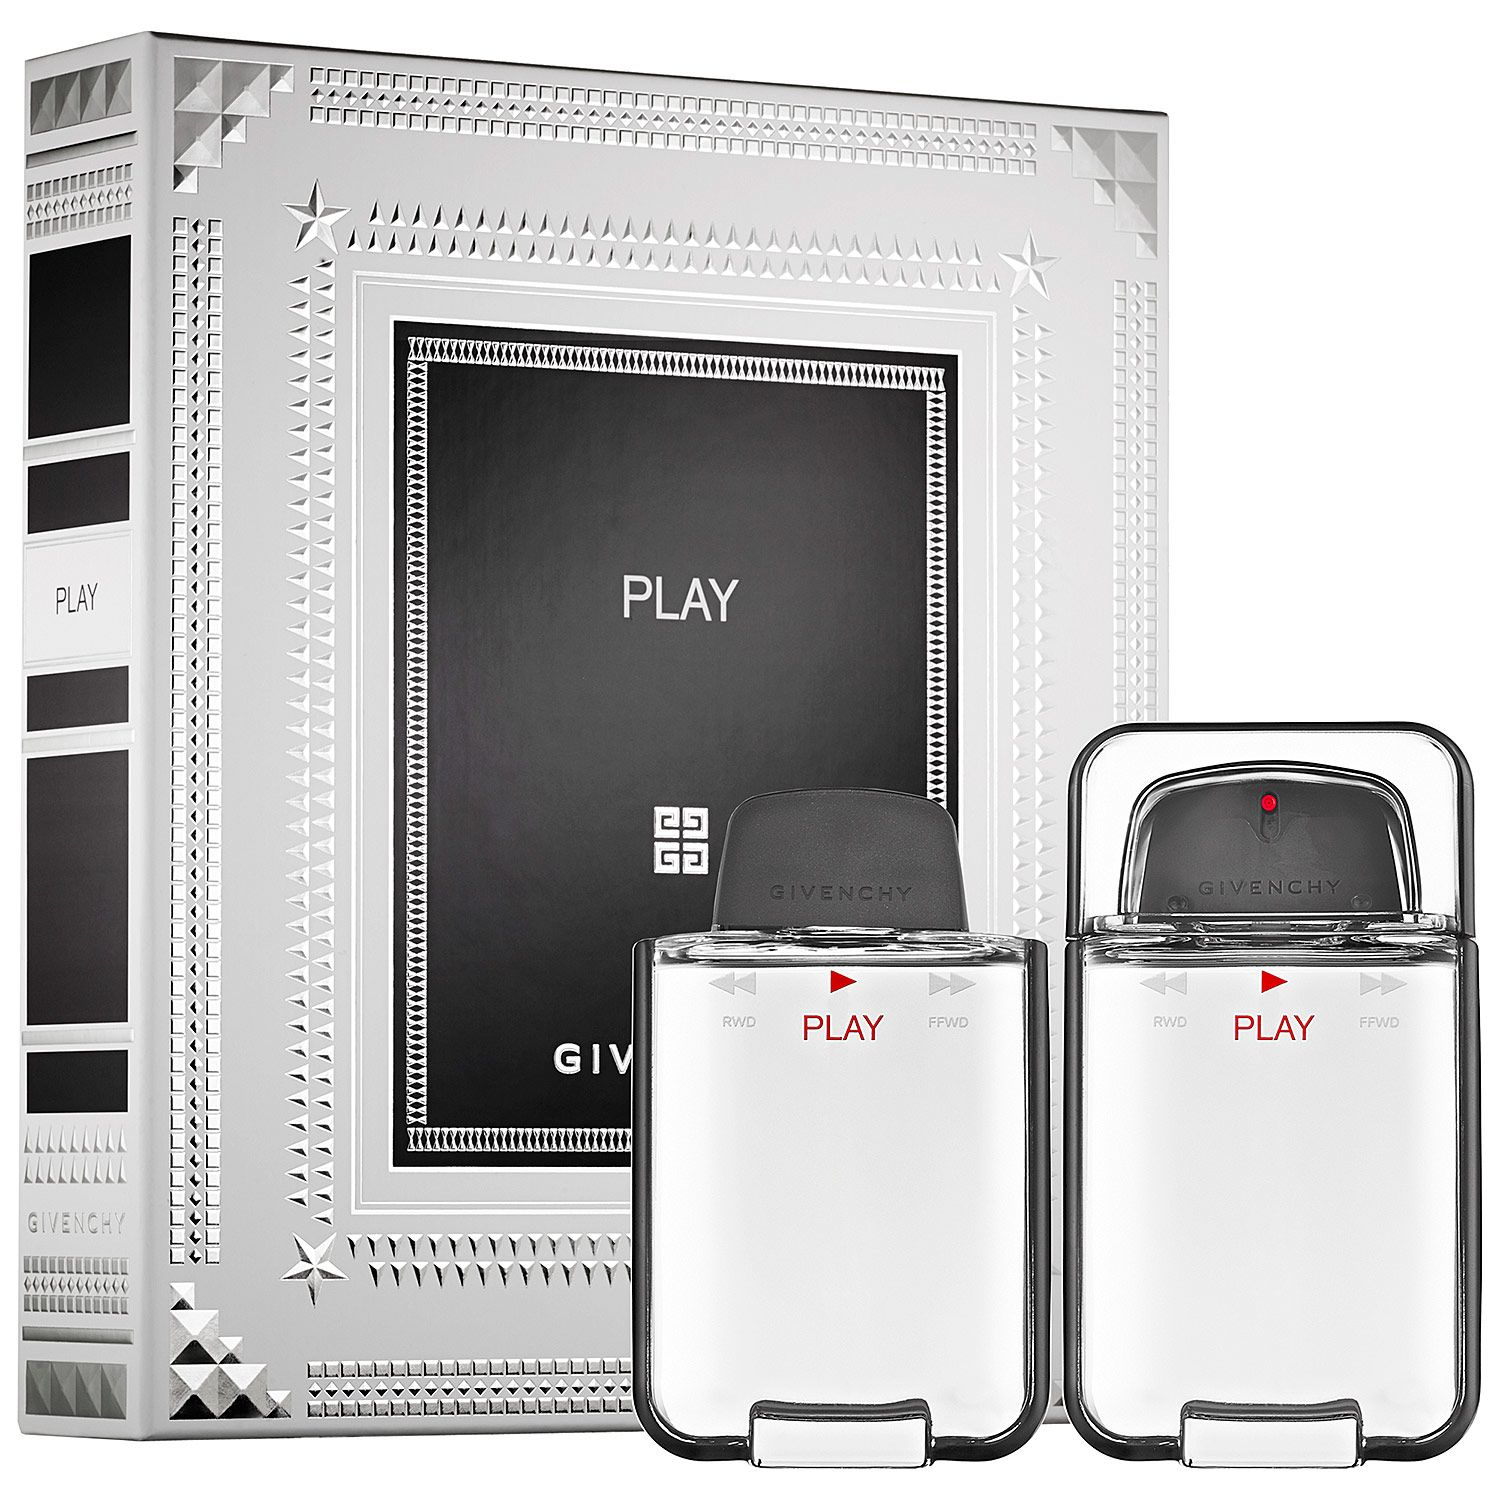 Givenchy Play Gift Set Sephora gifts giftsforhim